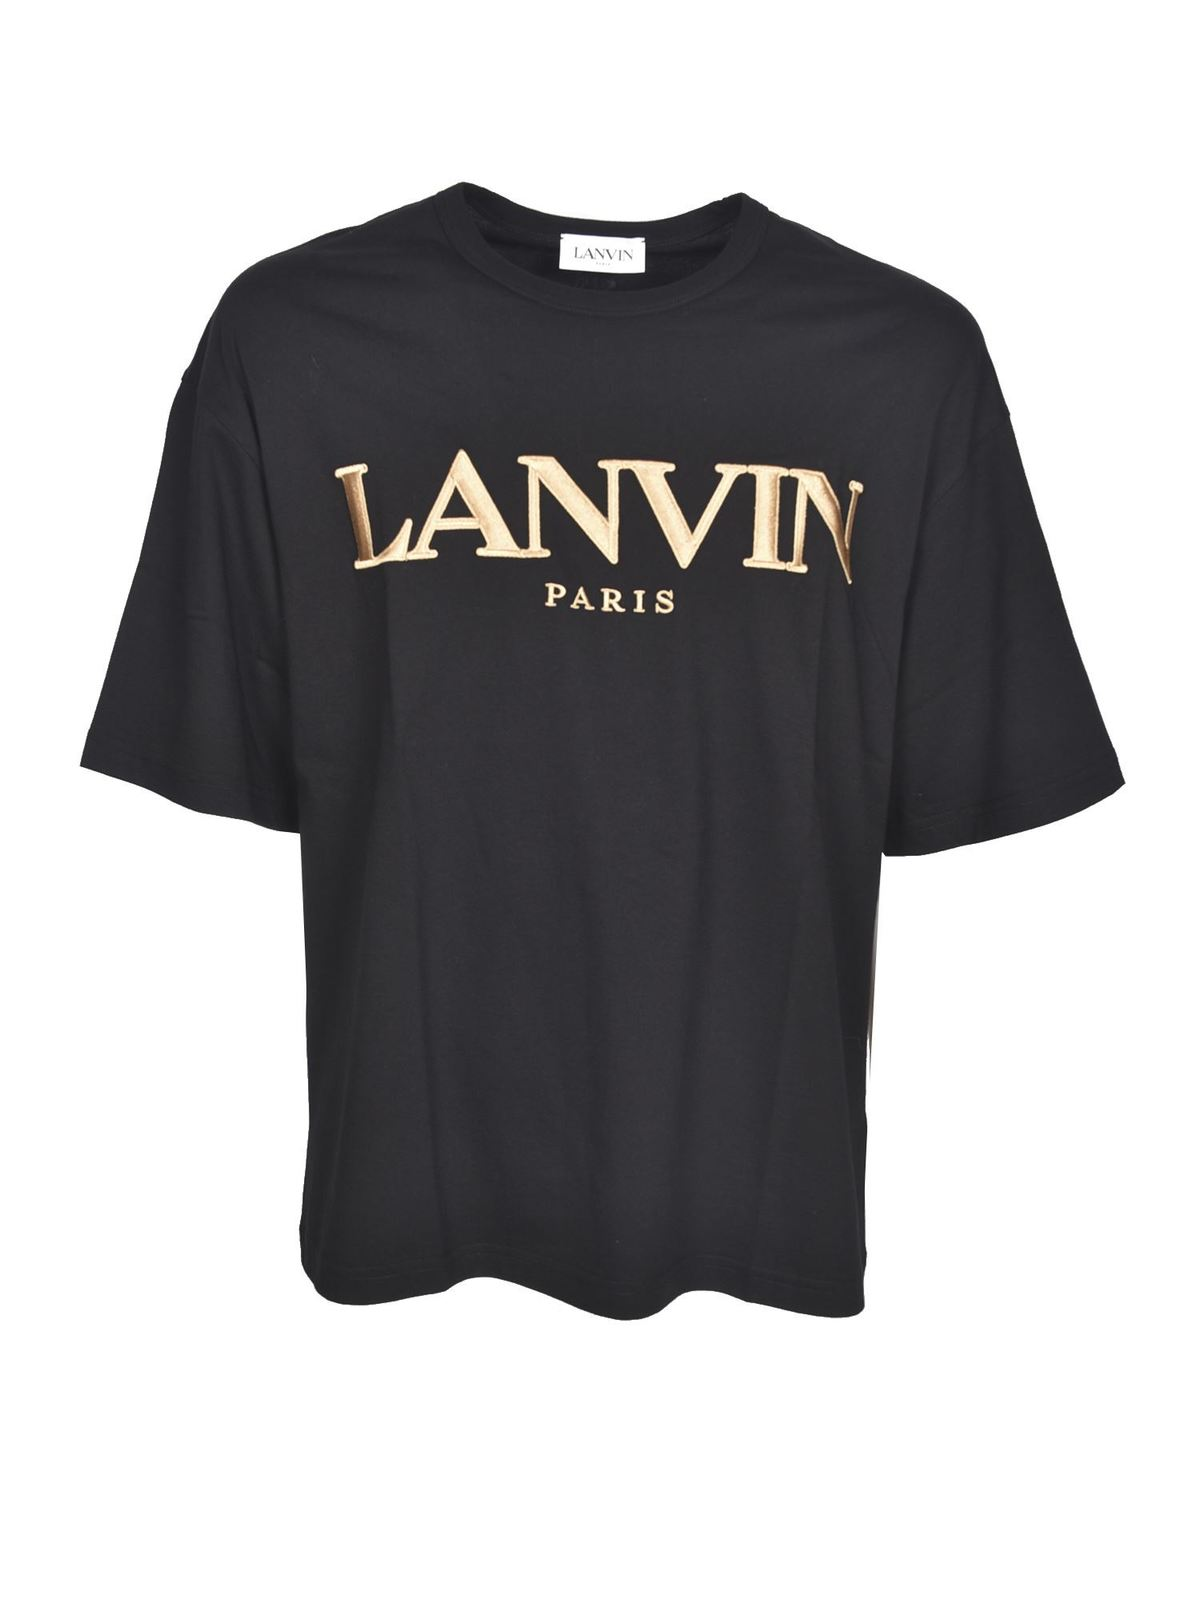 Lanvin BRANDED T-SHIRT IN BLACK AND GOLD